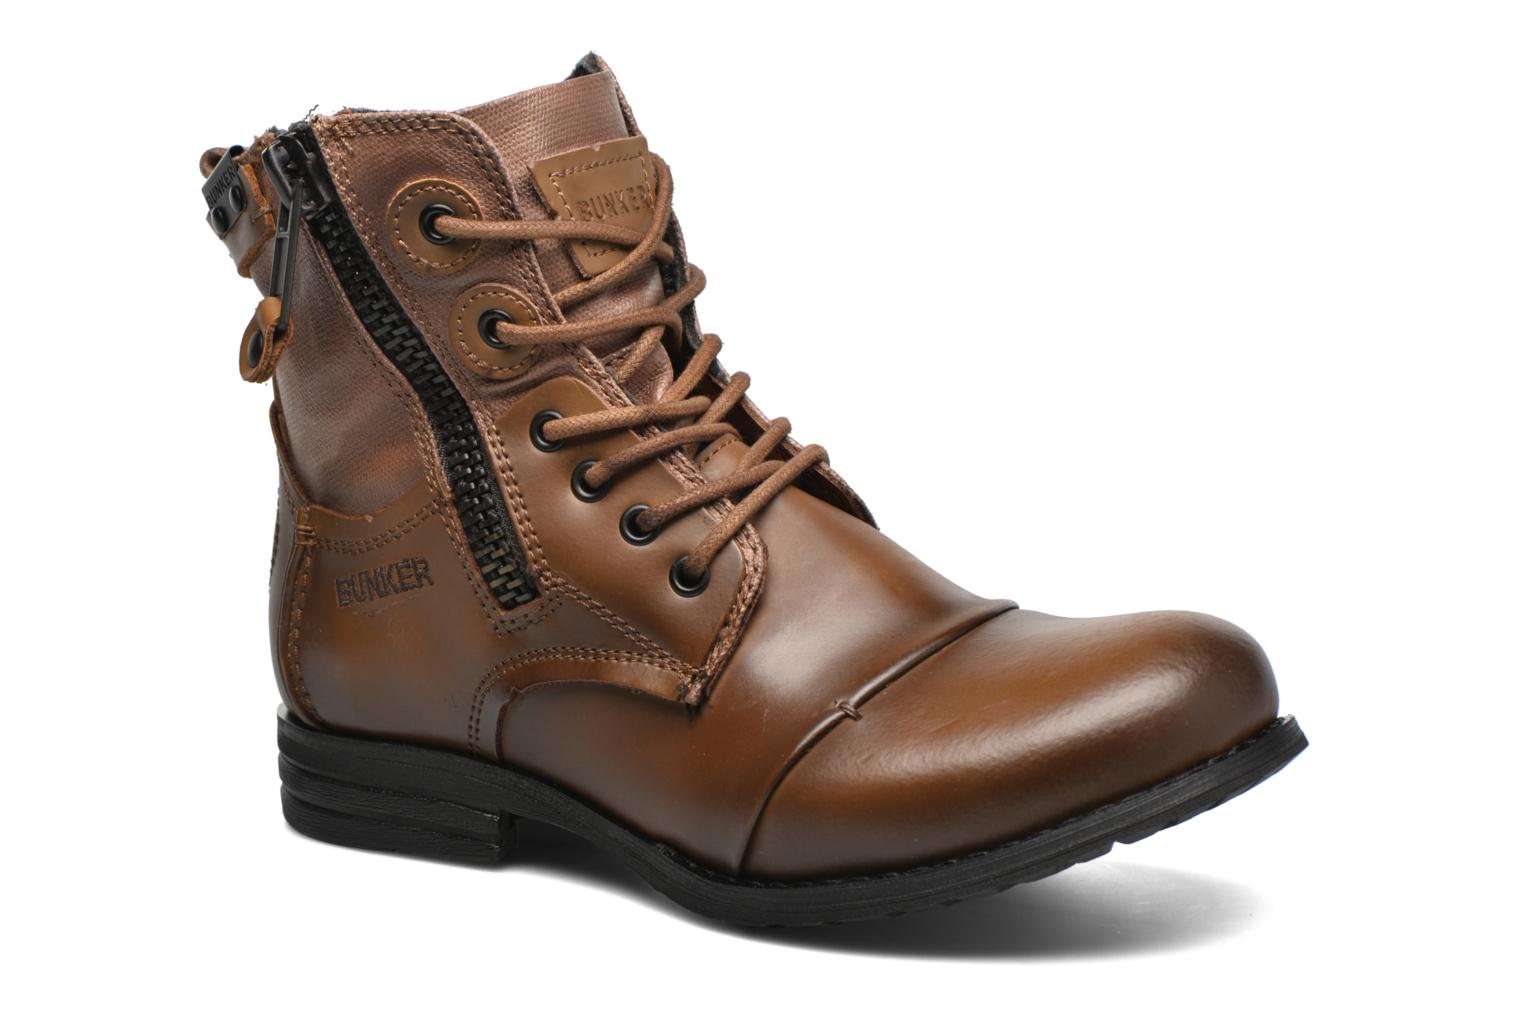 Bottines BUNKER ZIP-LU4 mEvSHJnq